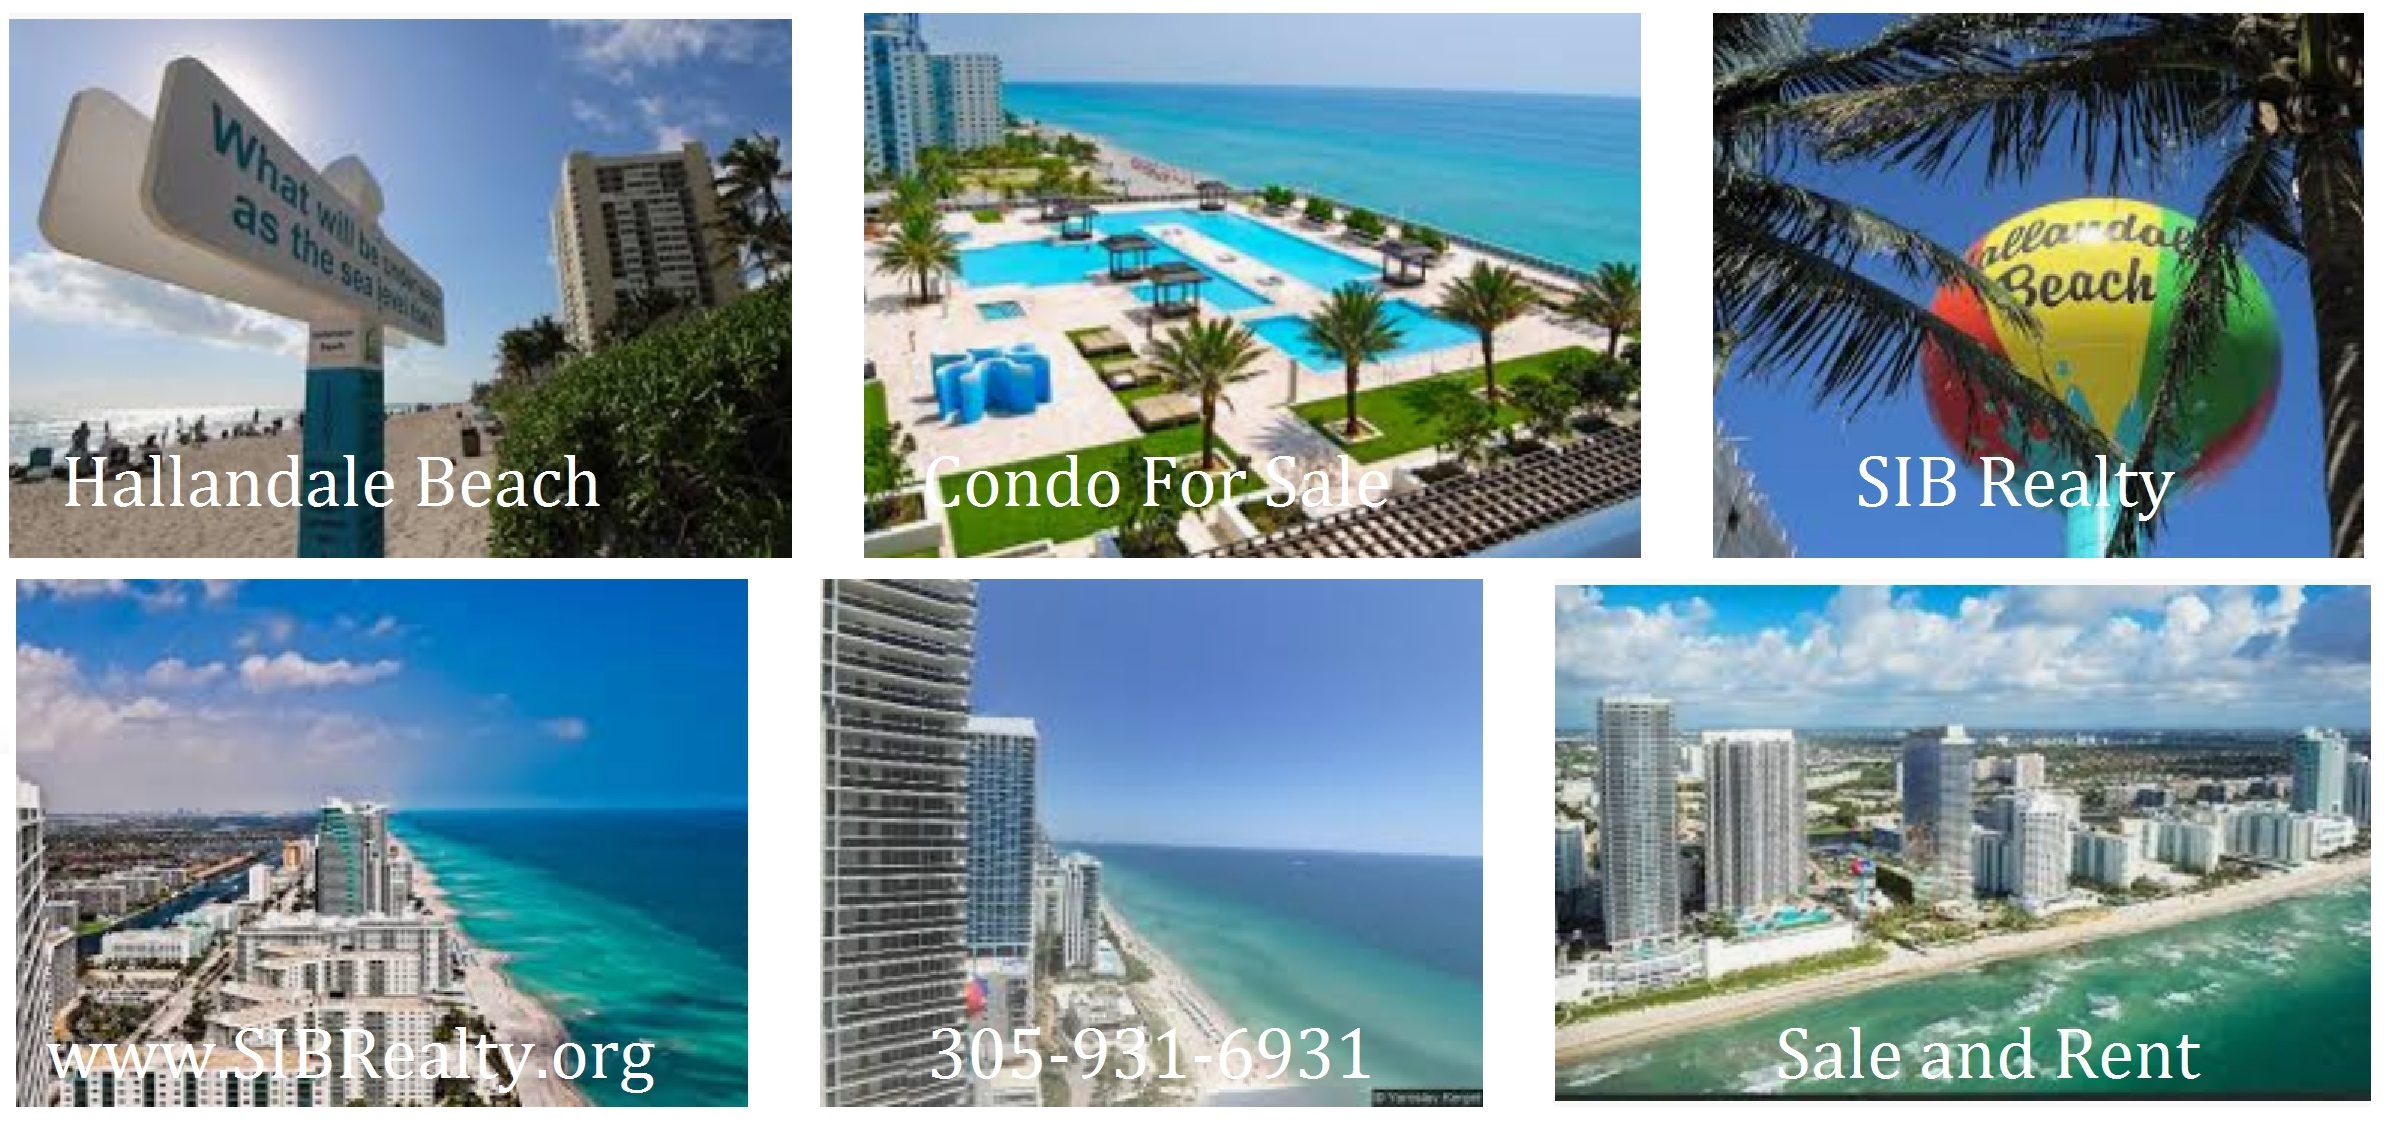 hallandale beach condo for sale